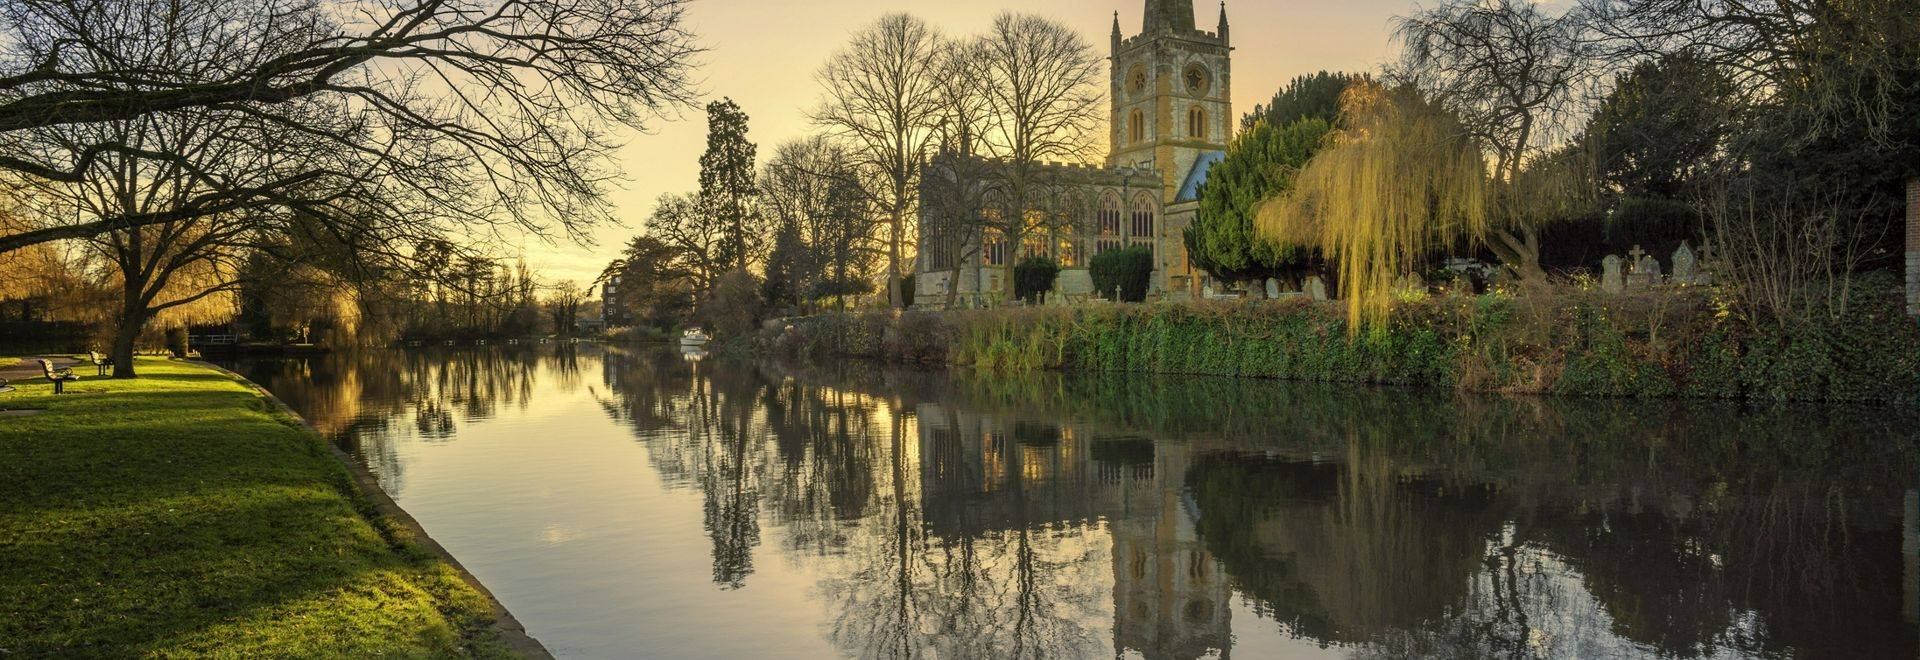 shakespeares burial place holy trinity church stratford-upon-avon  warwickshire the midlands england uk. reflections in the …